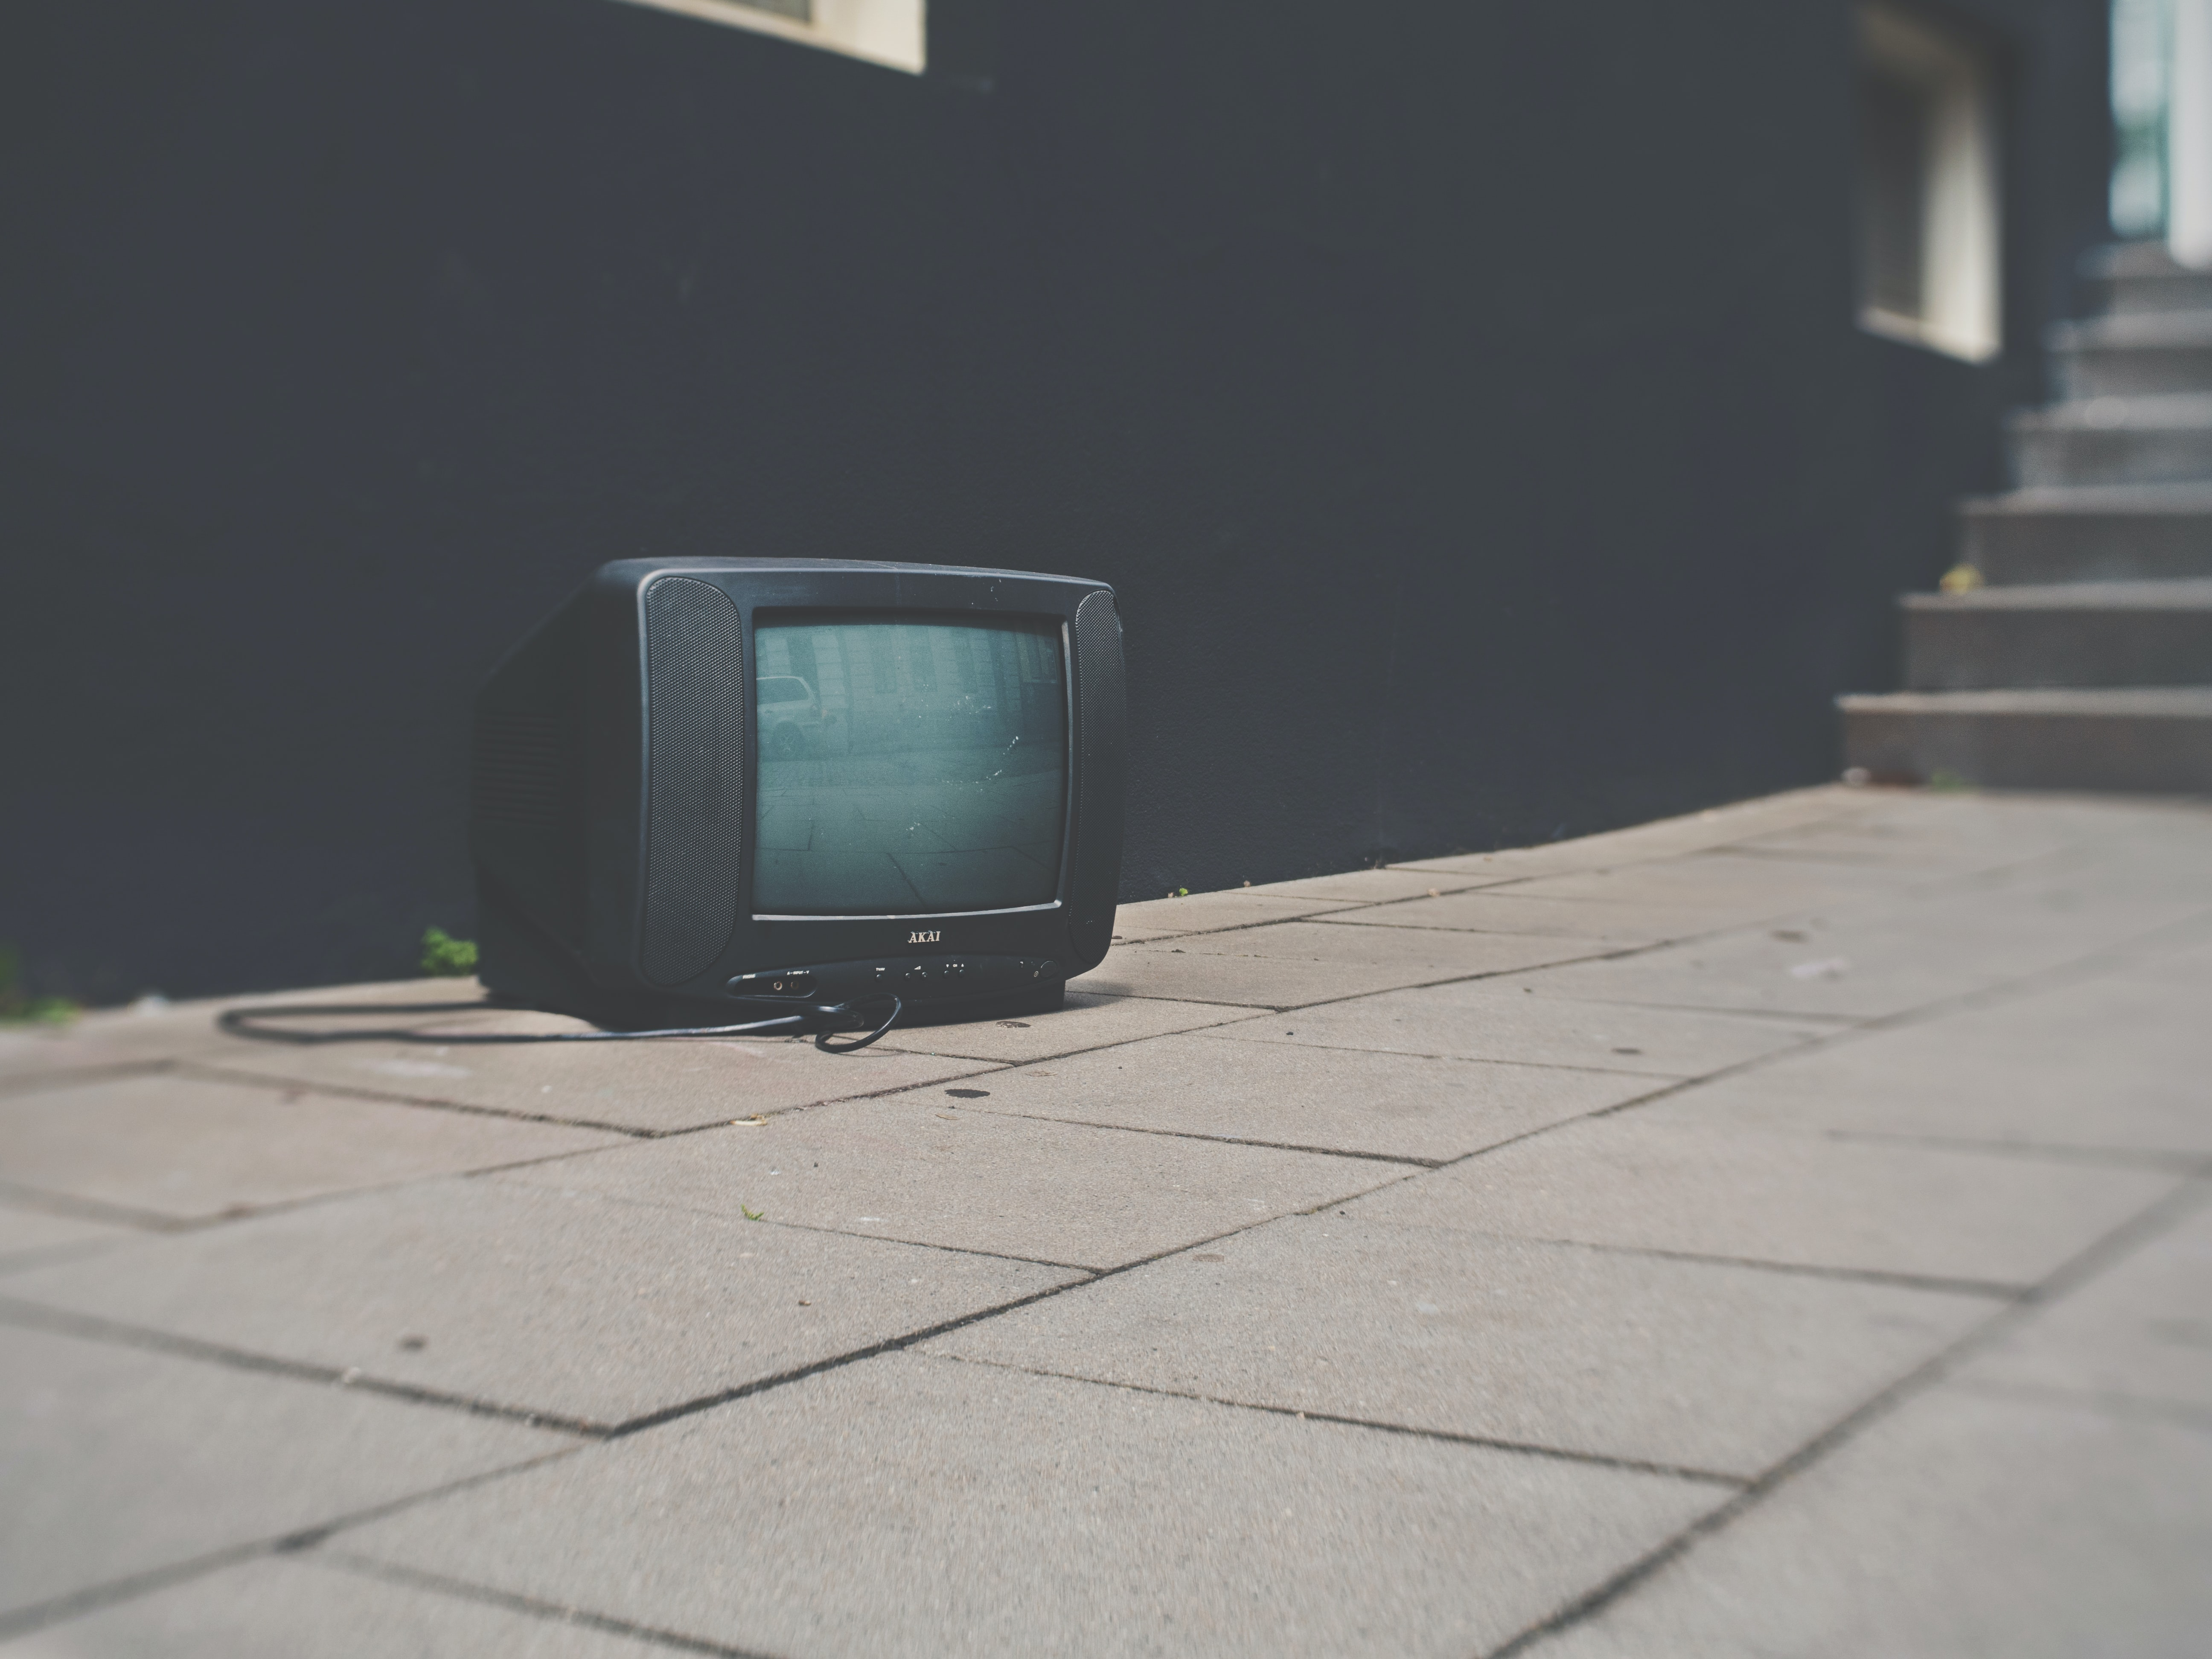 Too Much T.V. hope stories